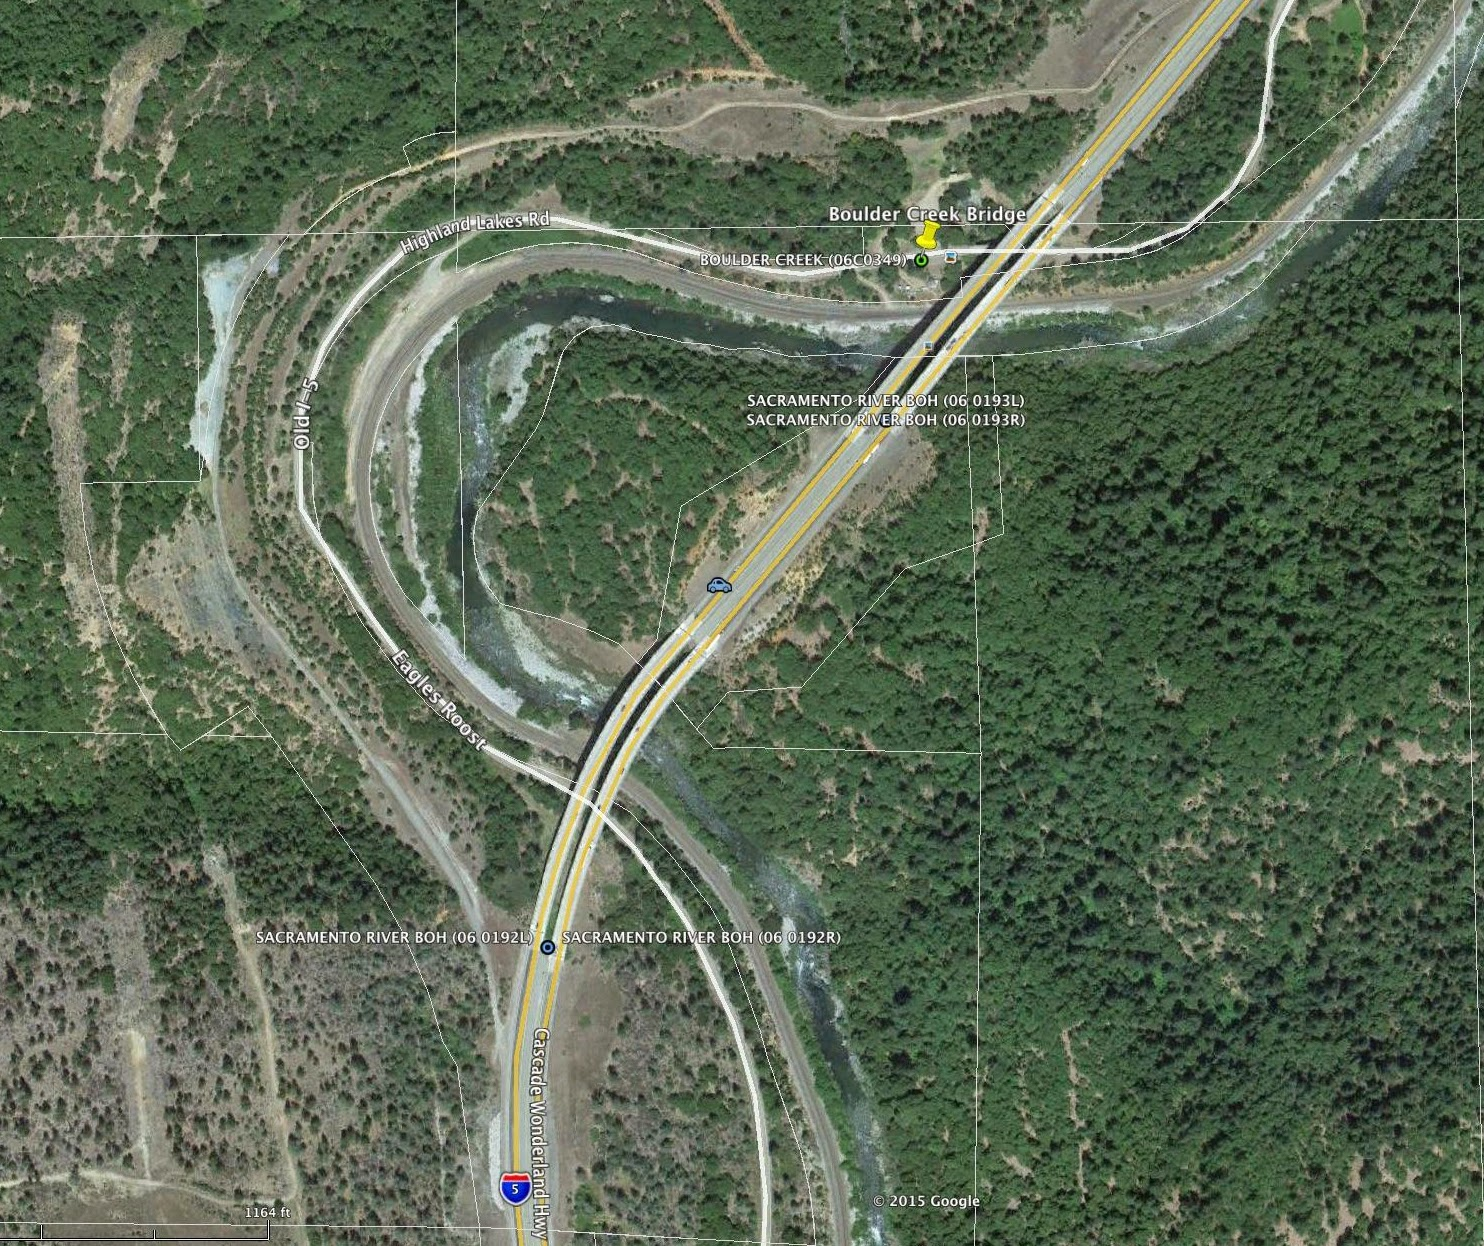 highway map of northern california with Shasta County California Bridges 20 on PCHWY 20Trip 202006 also Huntington Dog Beach likewise Hummingbird Migration also San Luis Rio Colorado Sonora furthermore Mussel Rock Park Beach.